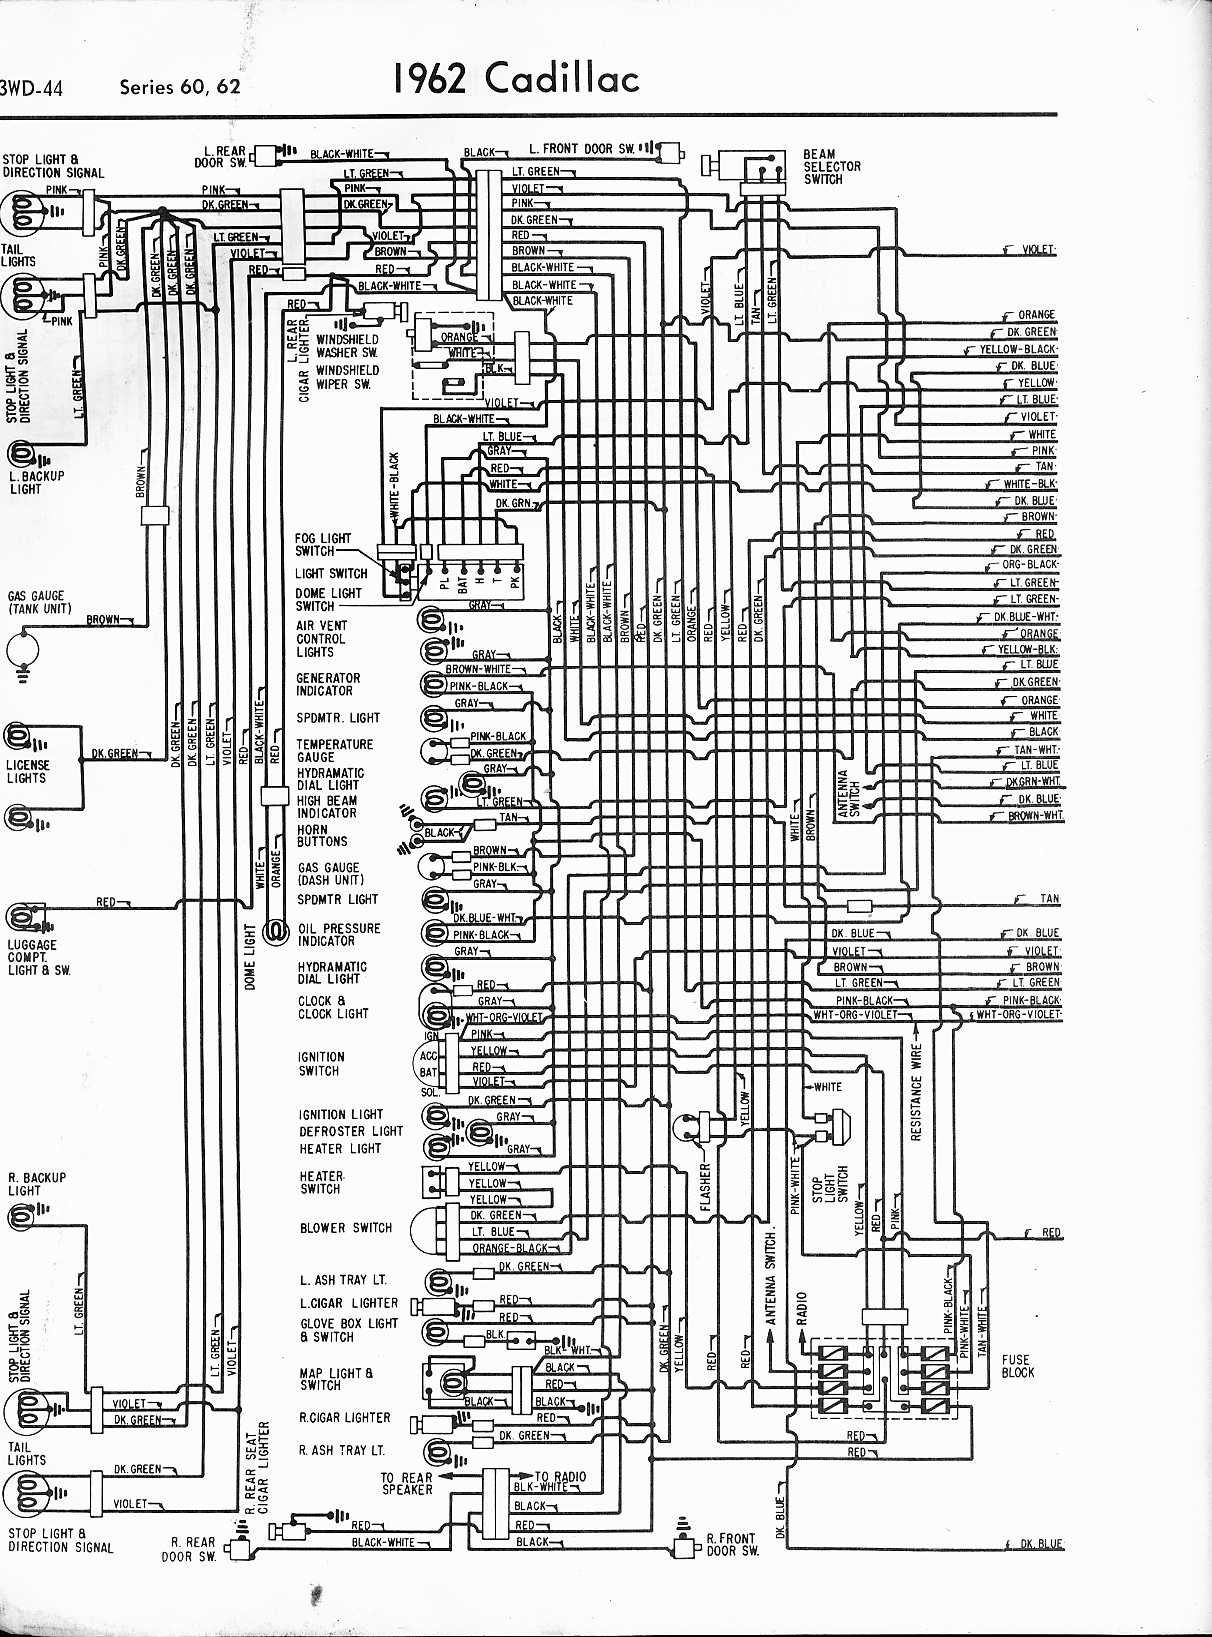 1970 Cadillac Wiring Harness Diagram Trusted 1969 1962 U2022